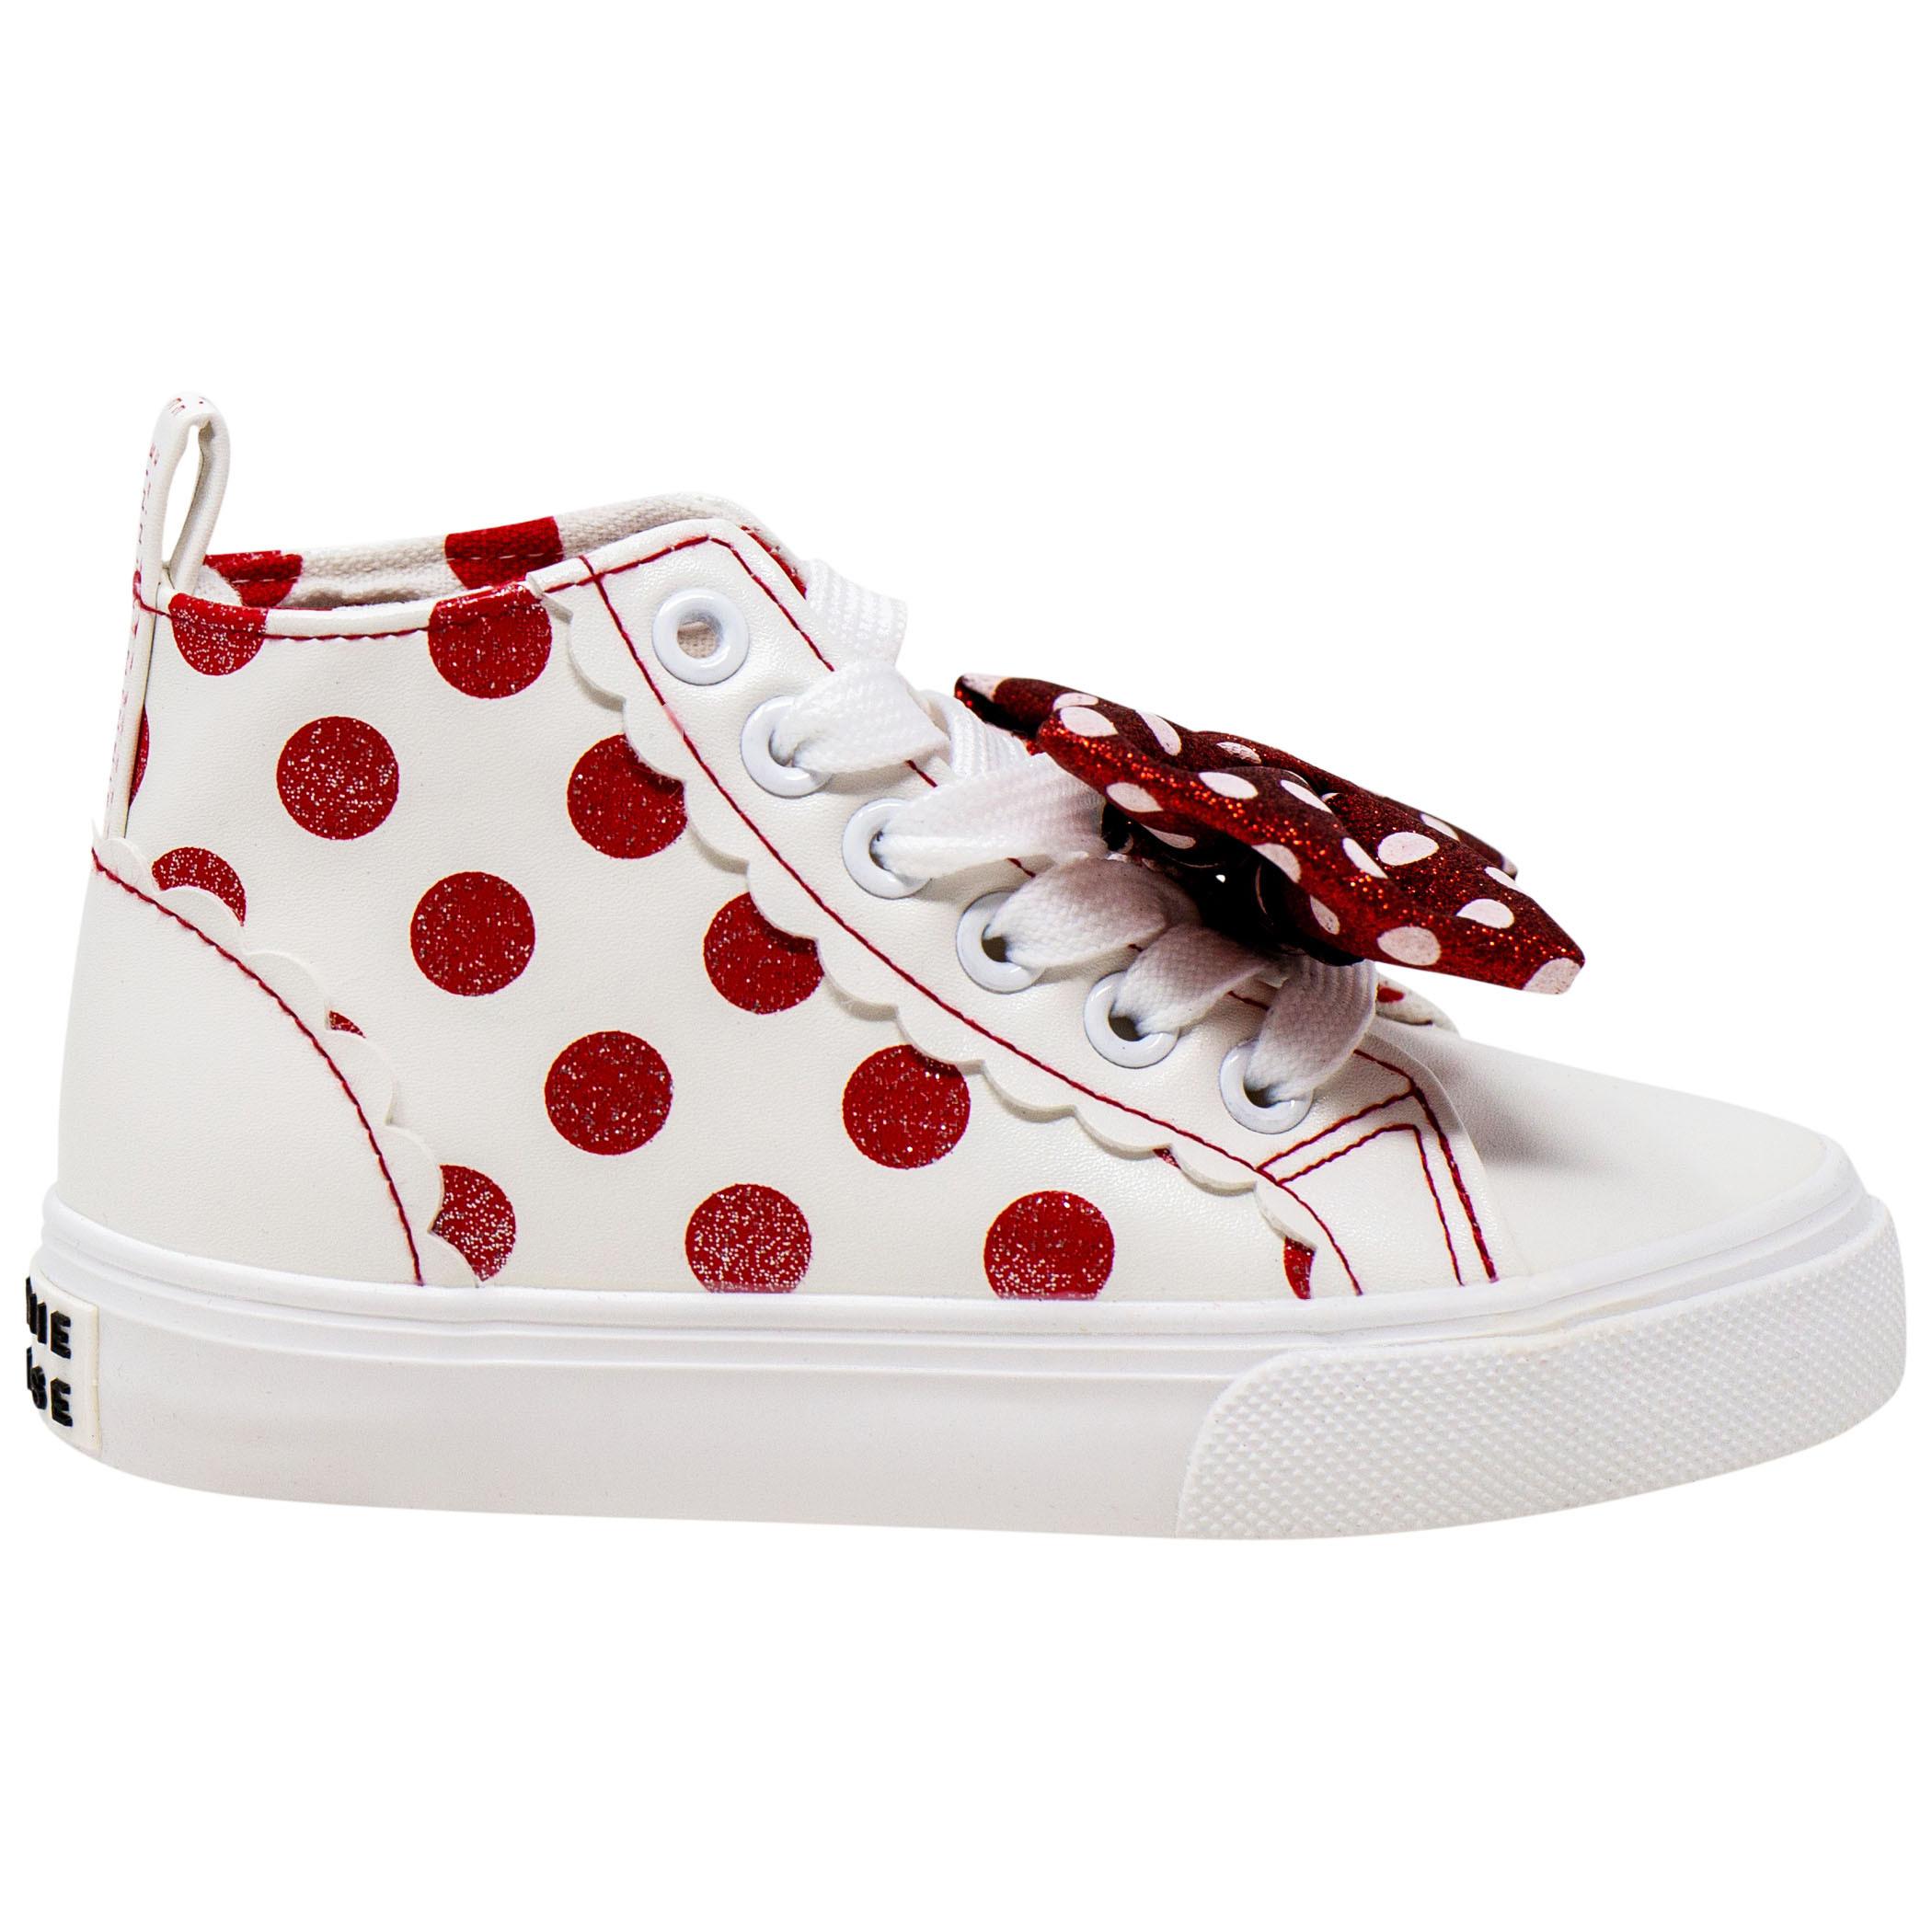 Disney Minnie Mouse Polka Dots and Bows Youth Girls Sneakers